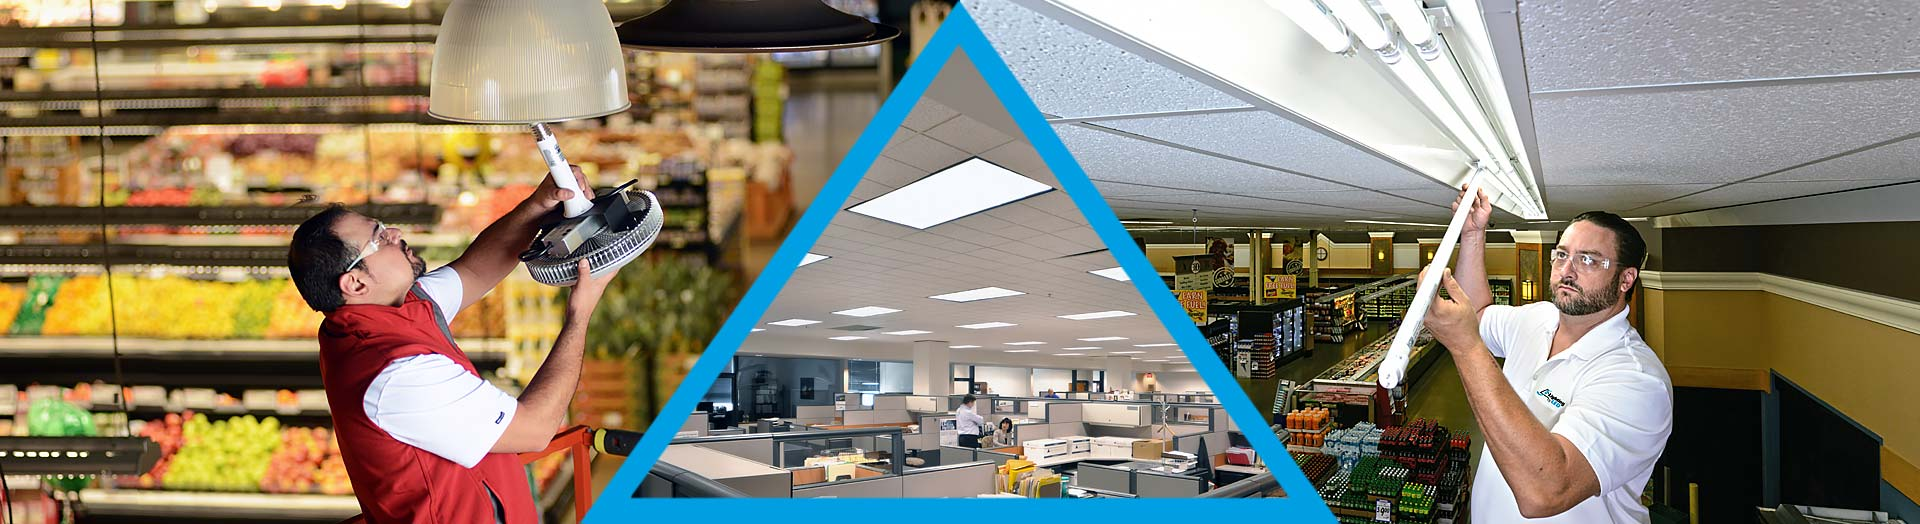 Lighting by LED installers retrofitting fluorescent fixtures with LED lights